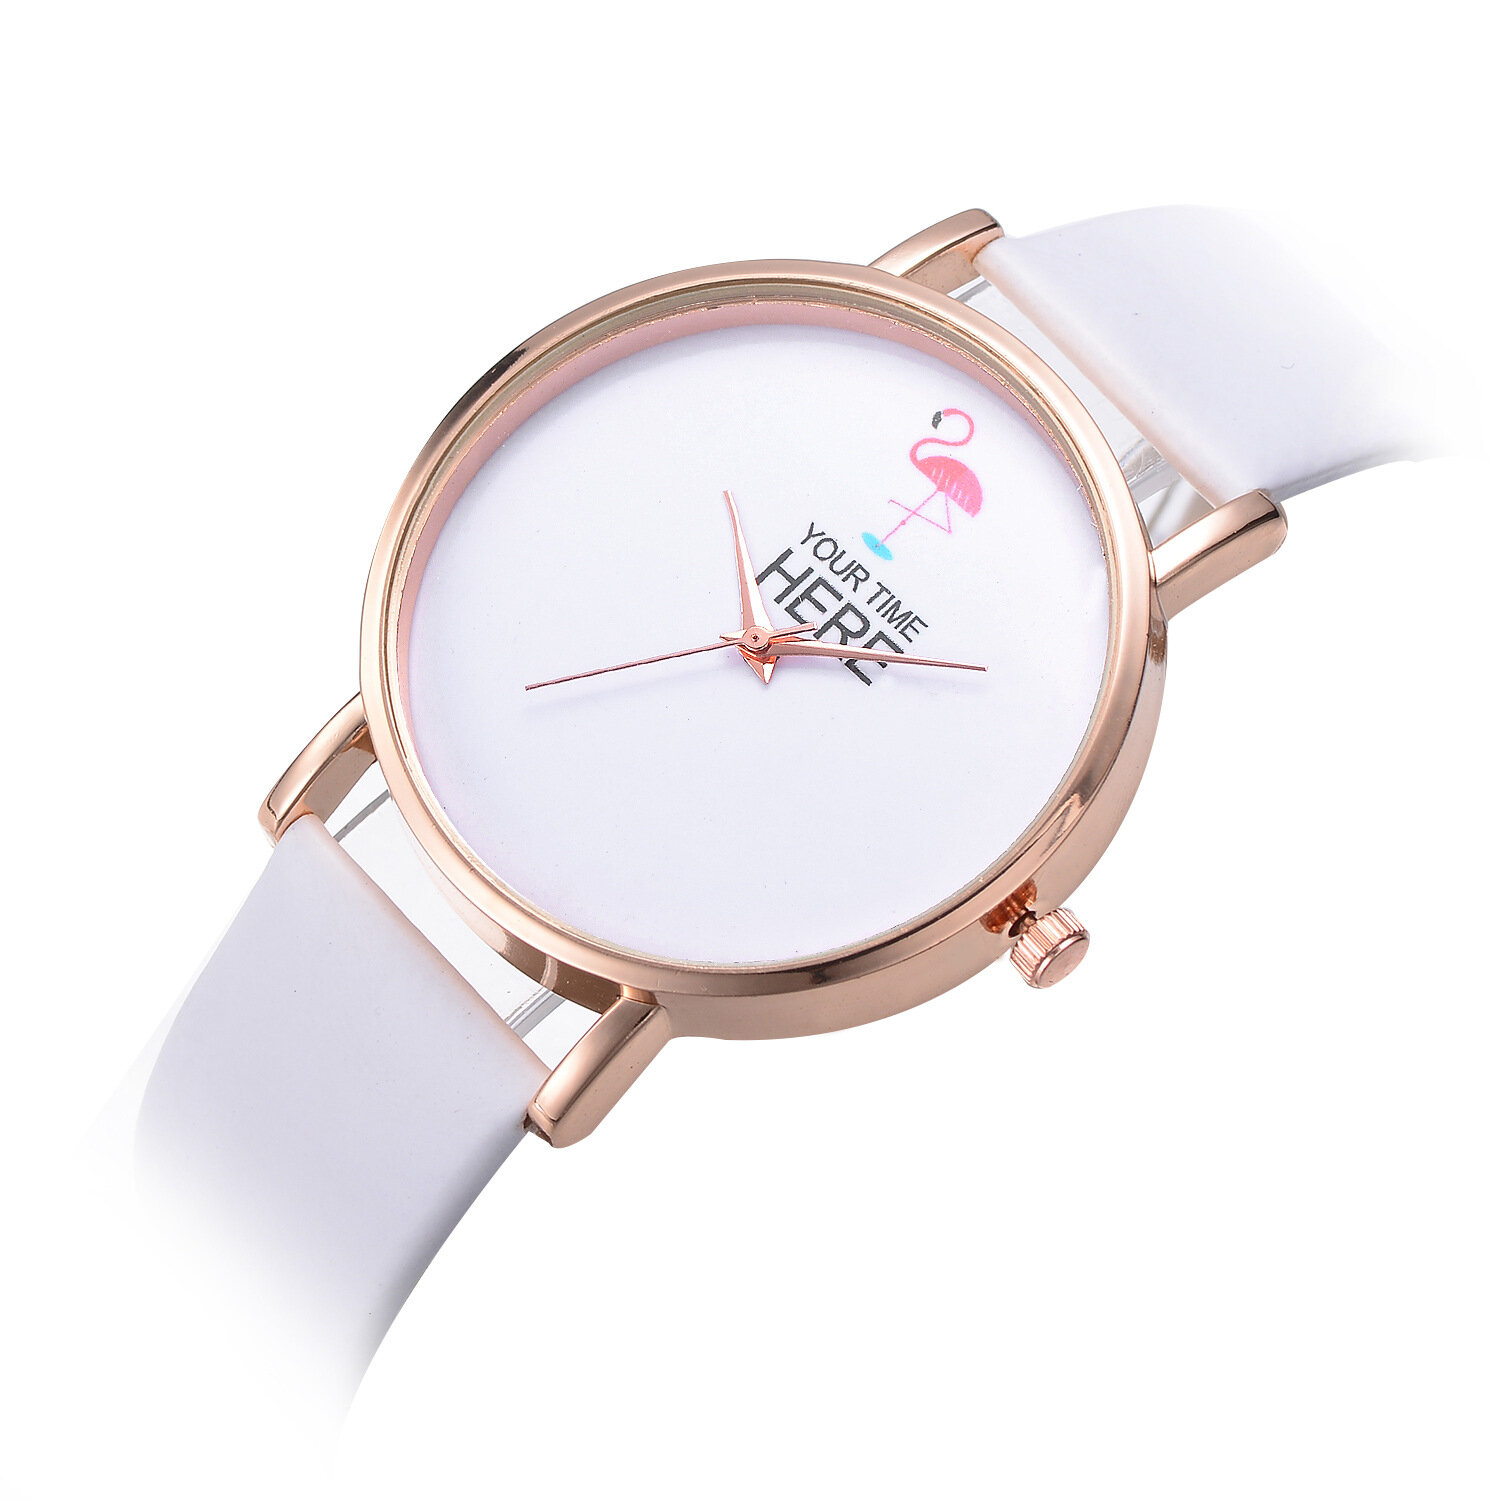 Leather Strap Rose Gold Watch Casual Style Women Wrist Watch Rose Gold Case Leather Strap Quartz Watch